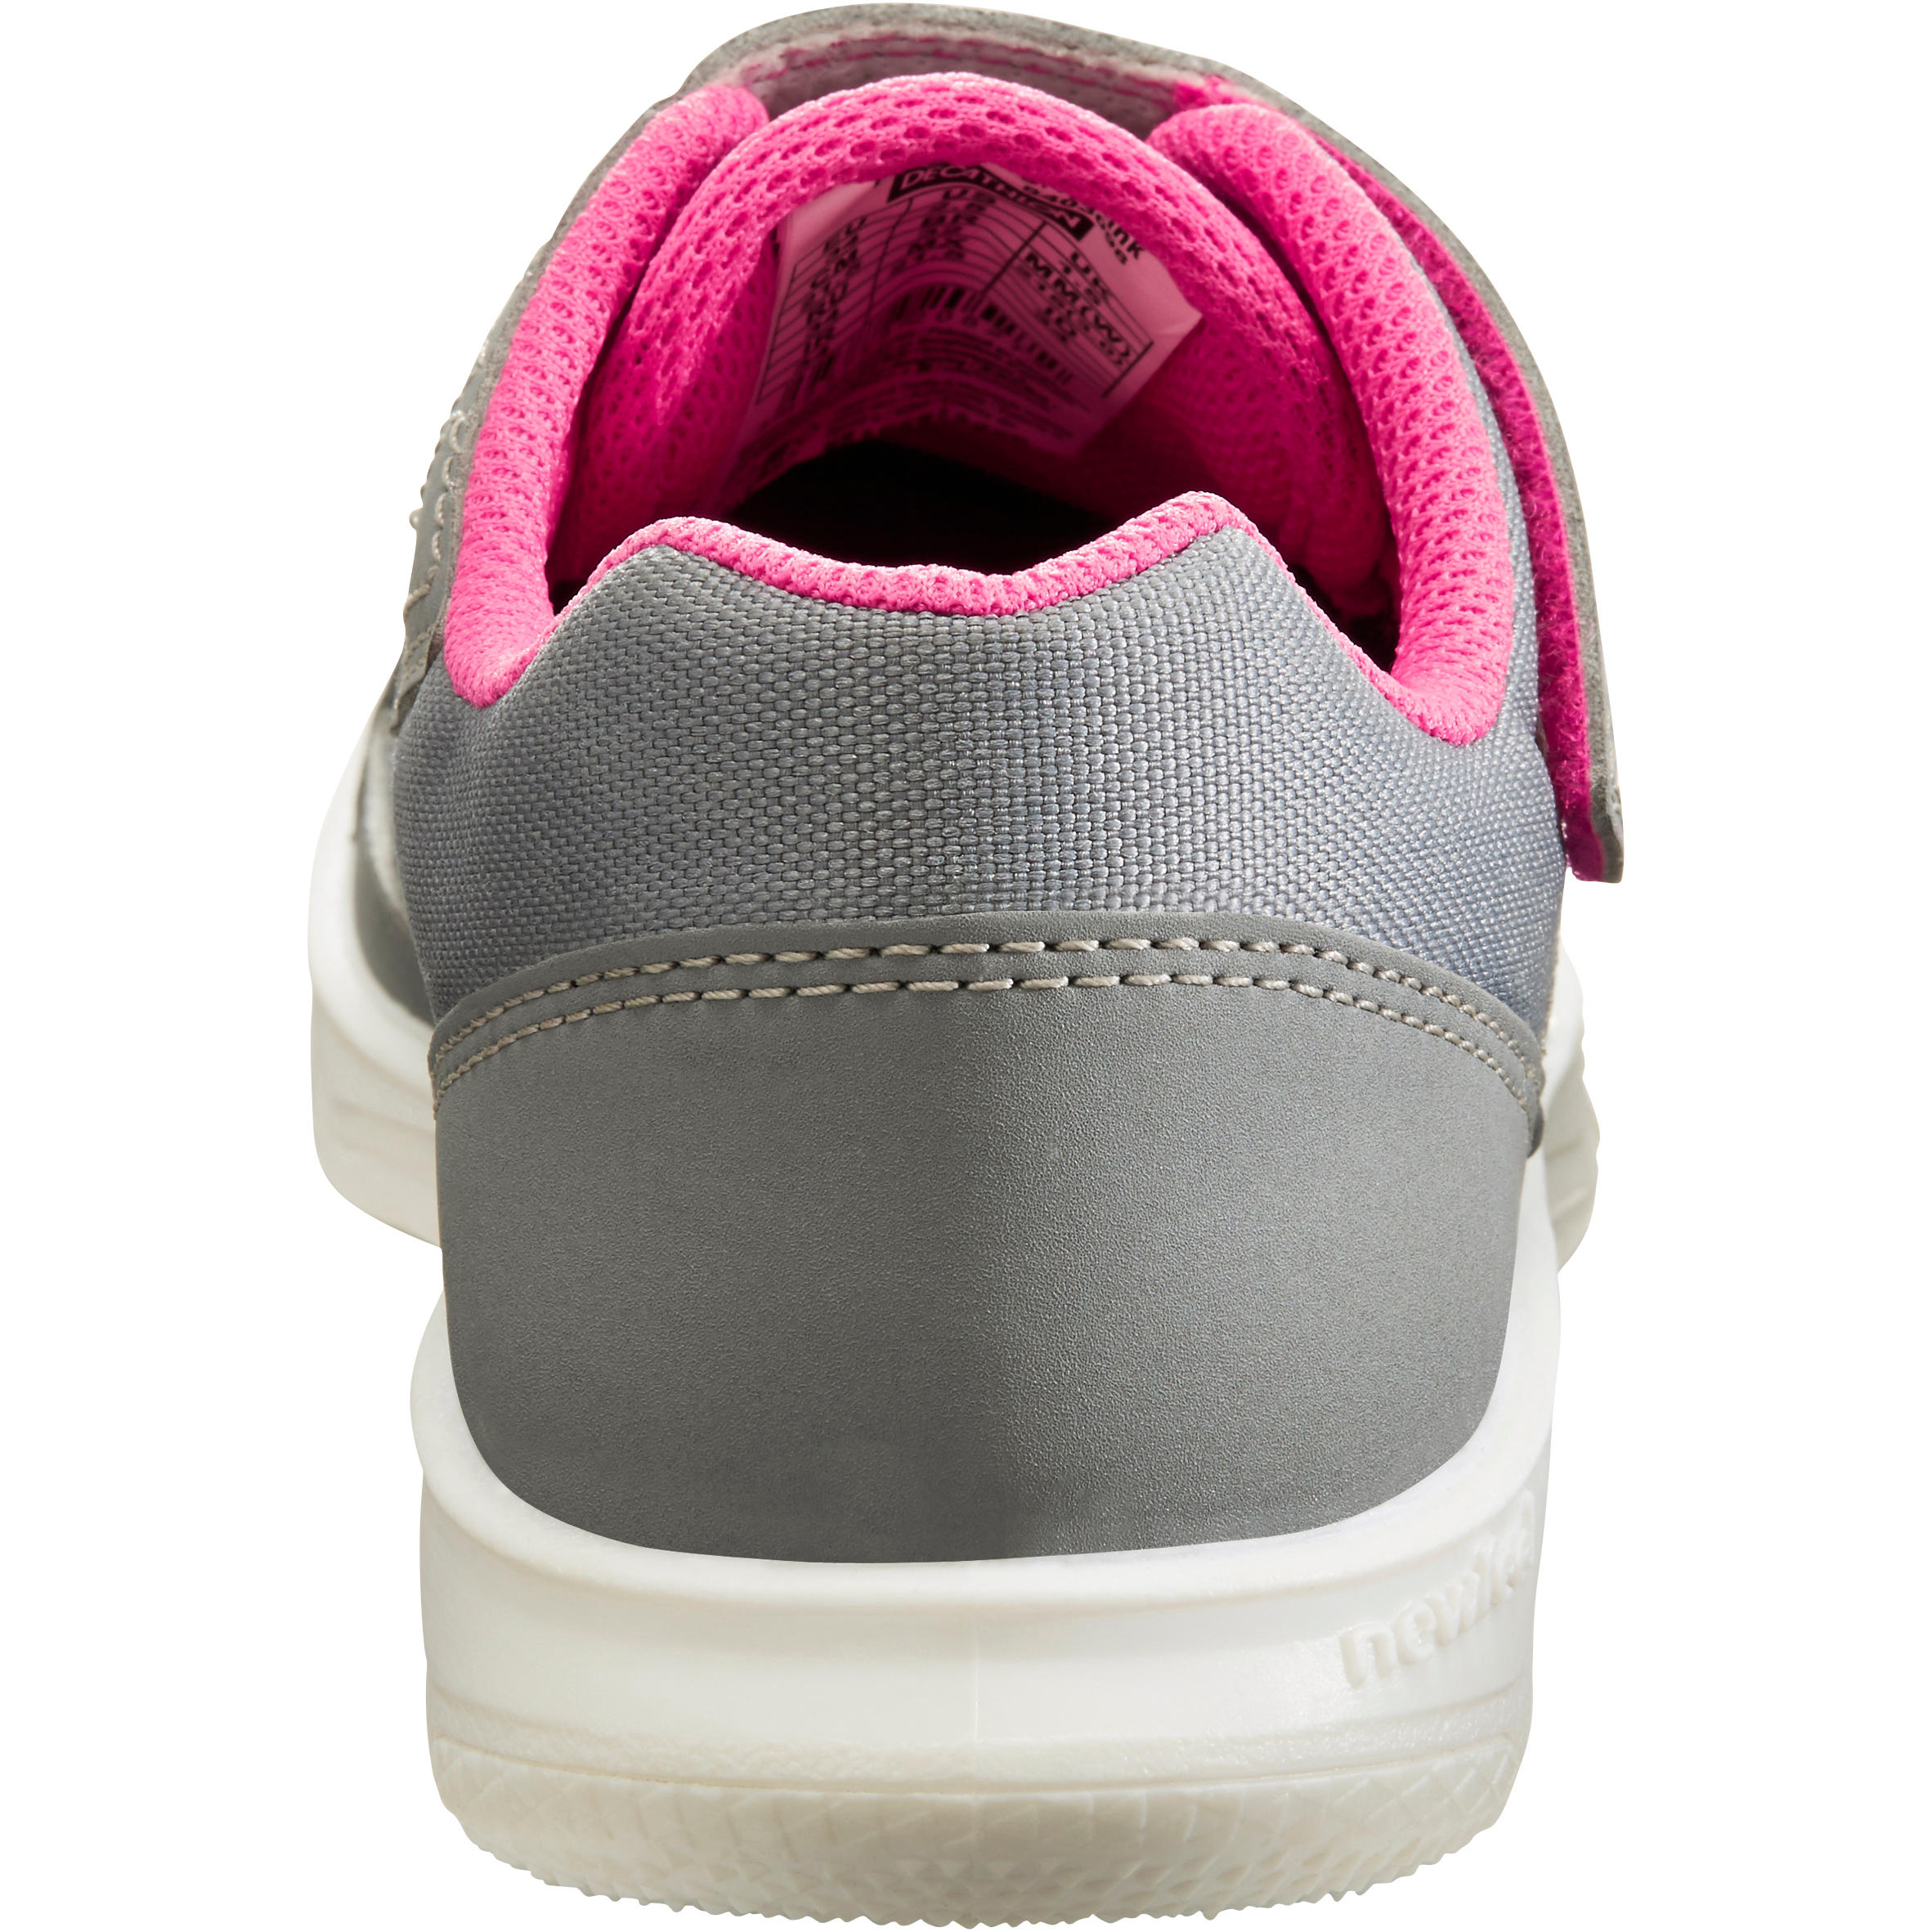 Walking Shoes for kids PW 100 - grey/pink